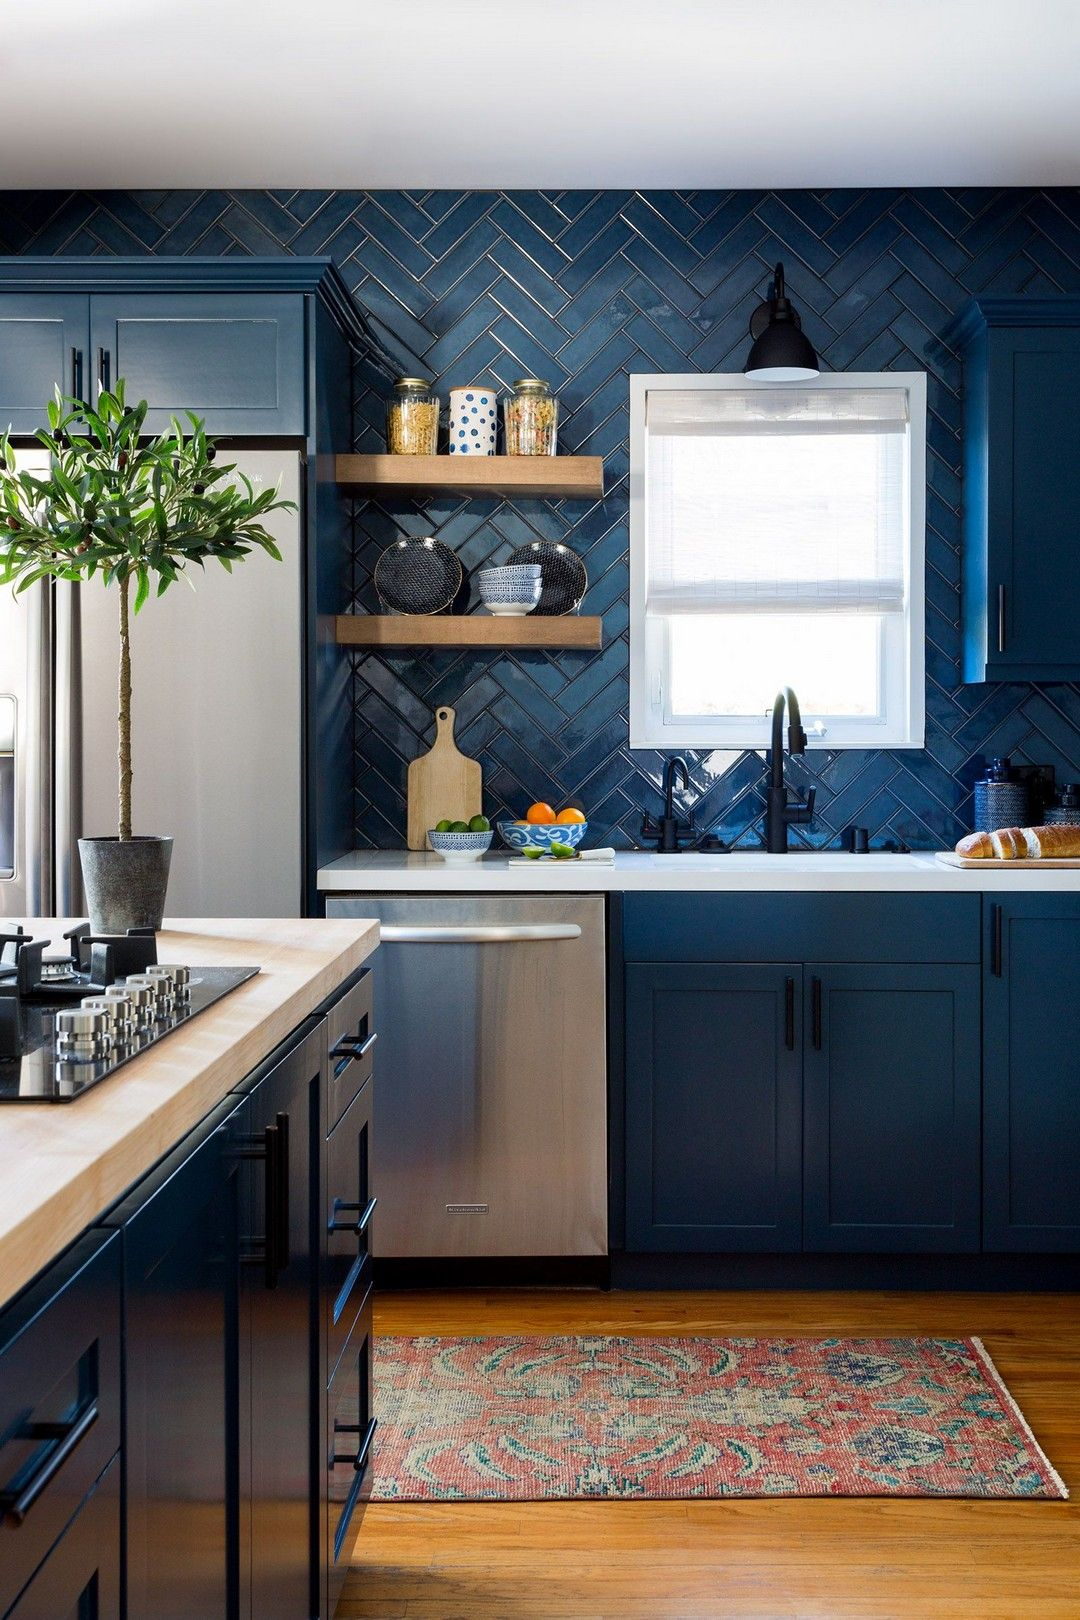 Stunning Dark Kitchen Backsplash Design Ideas - Kitchen backsplash designs, Top kitchen designs, Modern kitchen cabinet design, Kitchen cabinet design, Blue kitchen cabinets, Kitchen design - Stunning Dark Kitchen Backsplash Design Ideas Your kitchen expert will give you layouts  In the event, you prefer if you need to be sure to ask them whether the design goes with the whole house or not  Not only to find our set of kitchen backsplash pictures, but you will also discover distinctive an